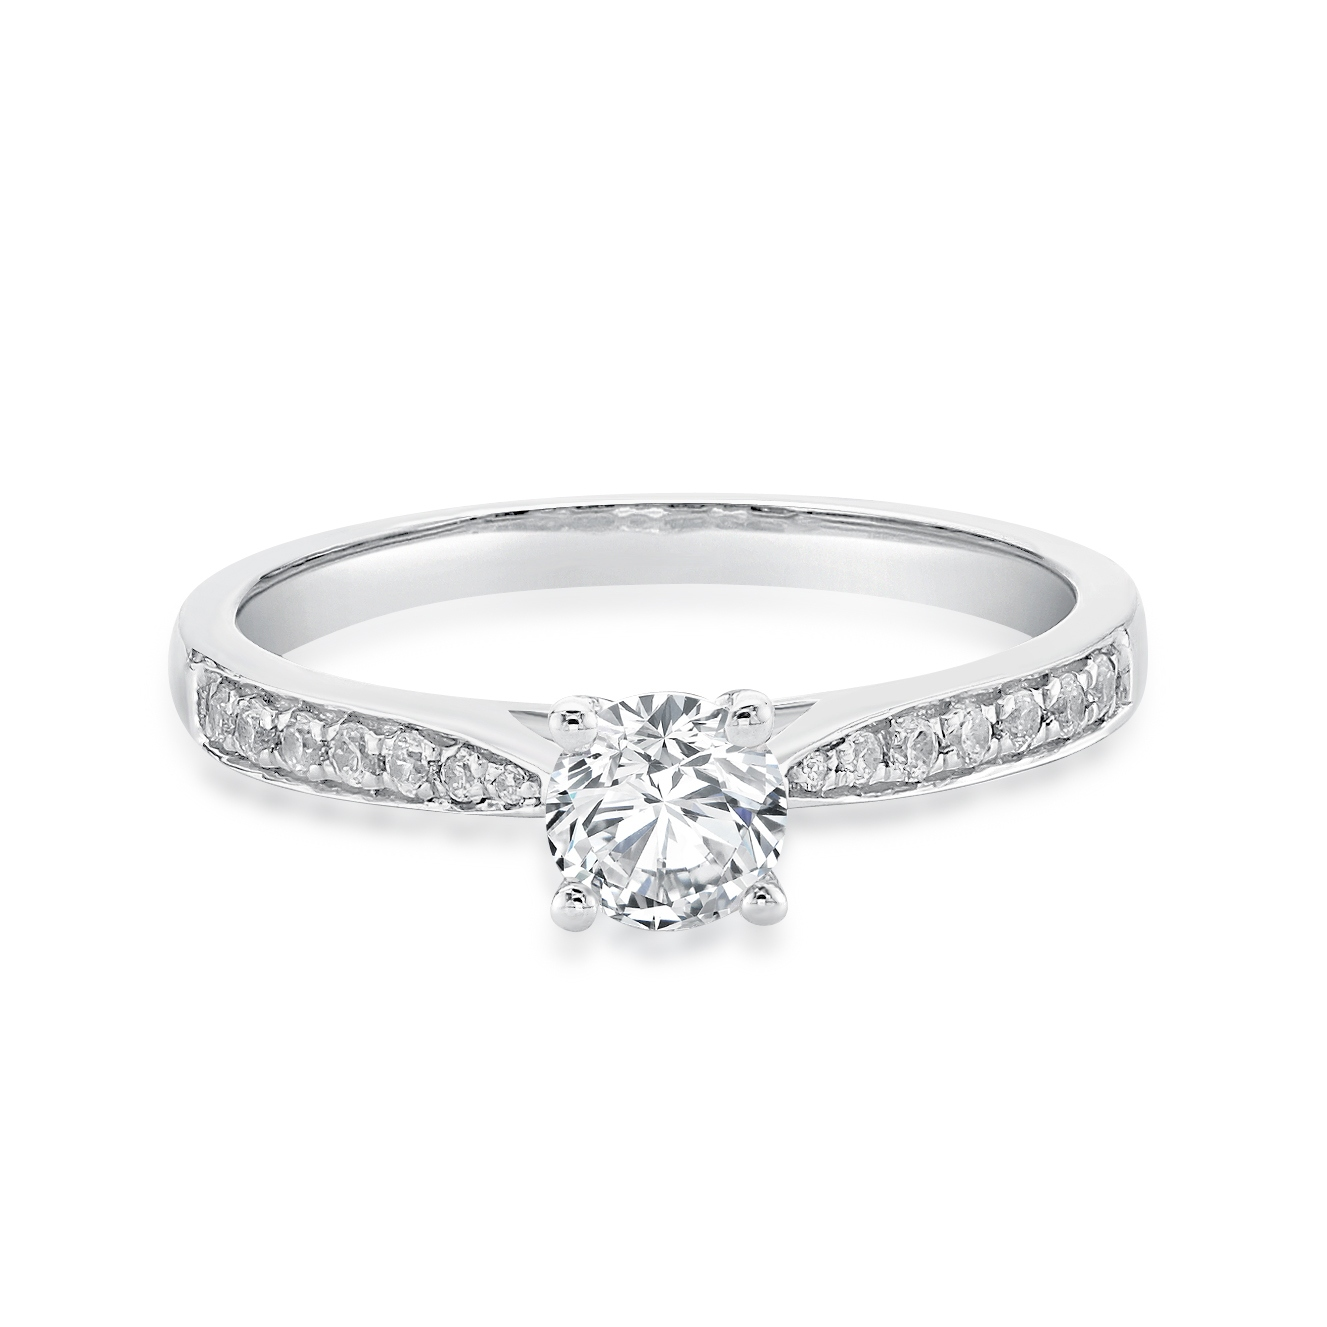 18ct White Gold Ring with Diamond Shoulders